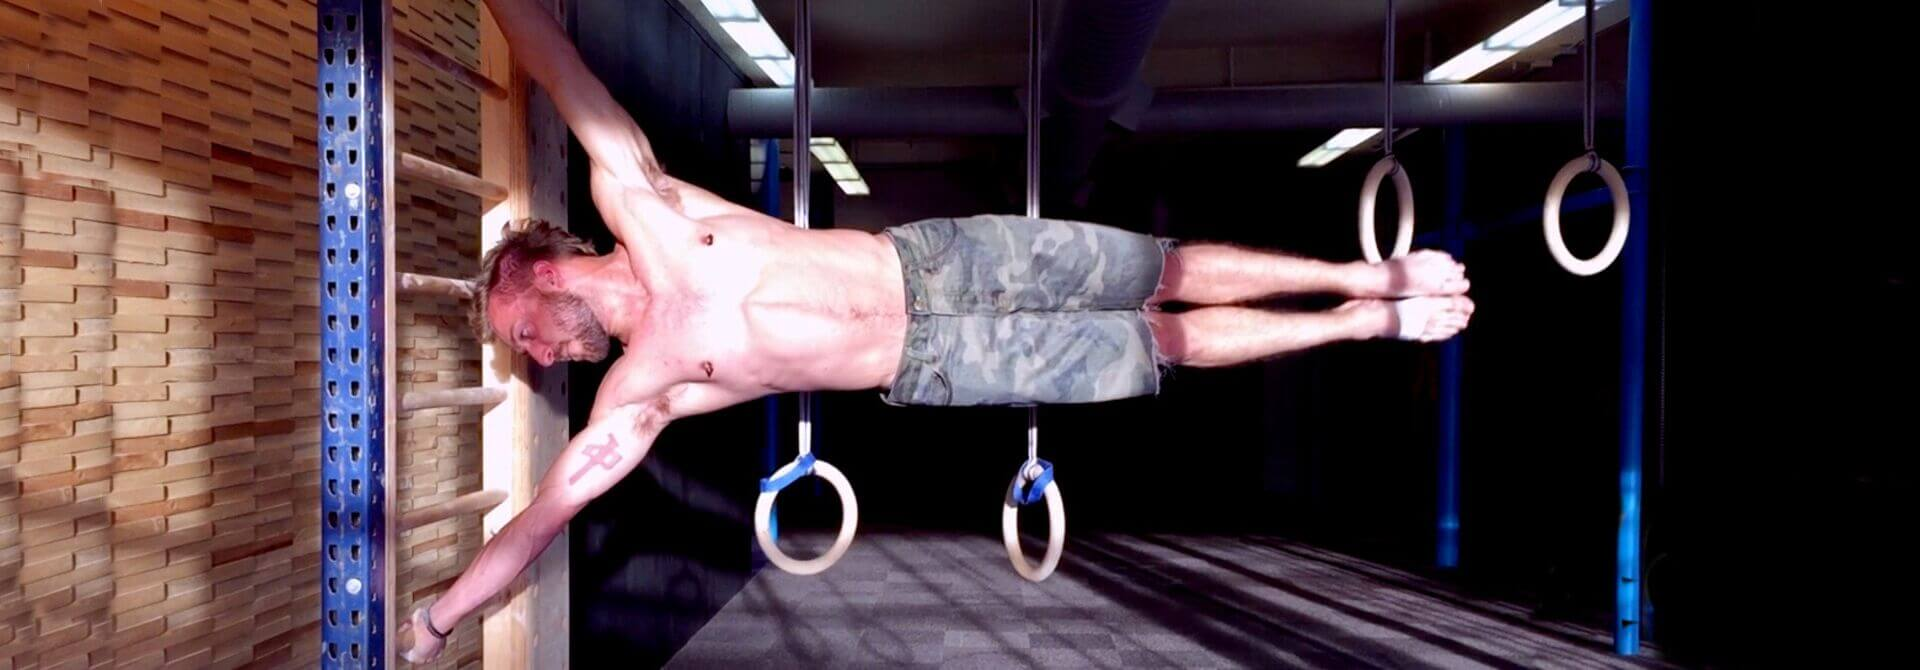 Obliques The Missing Link In Your Core Gymnasticbodies